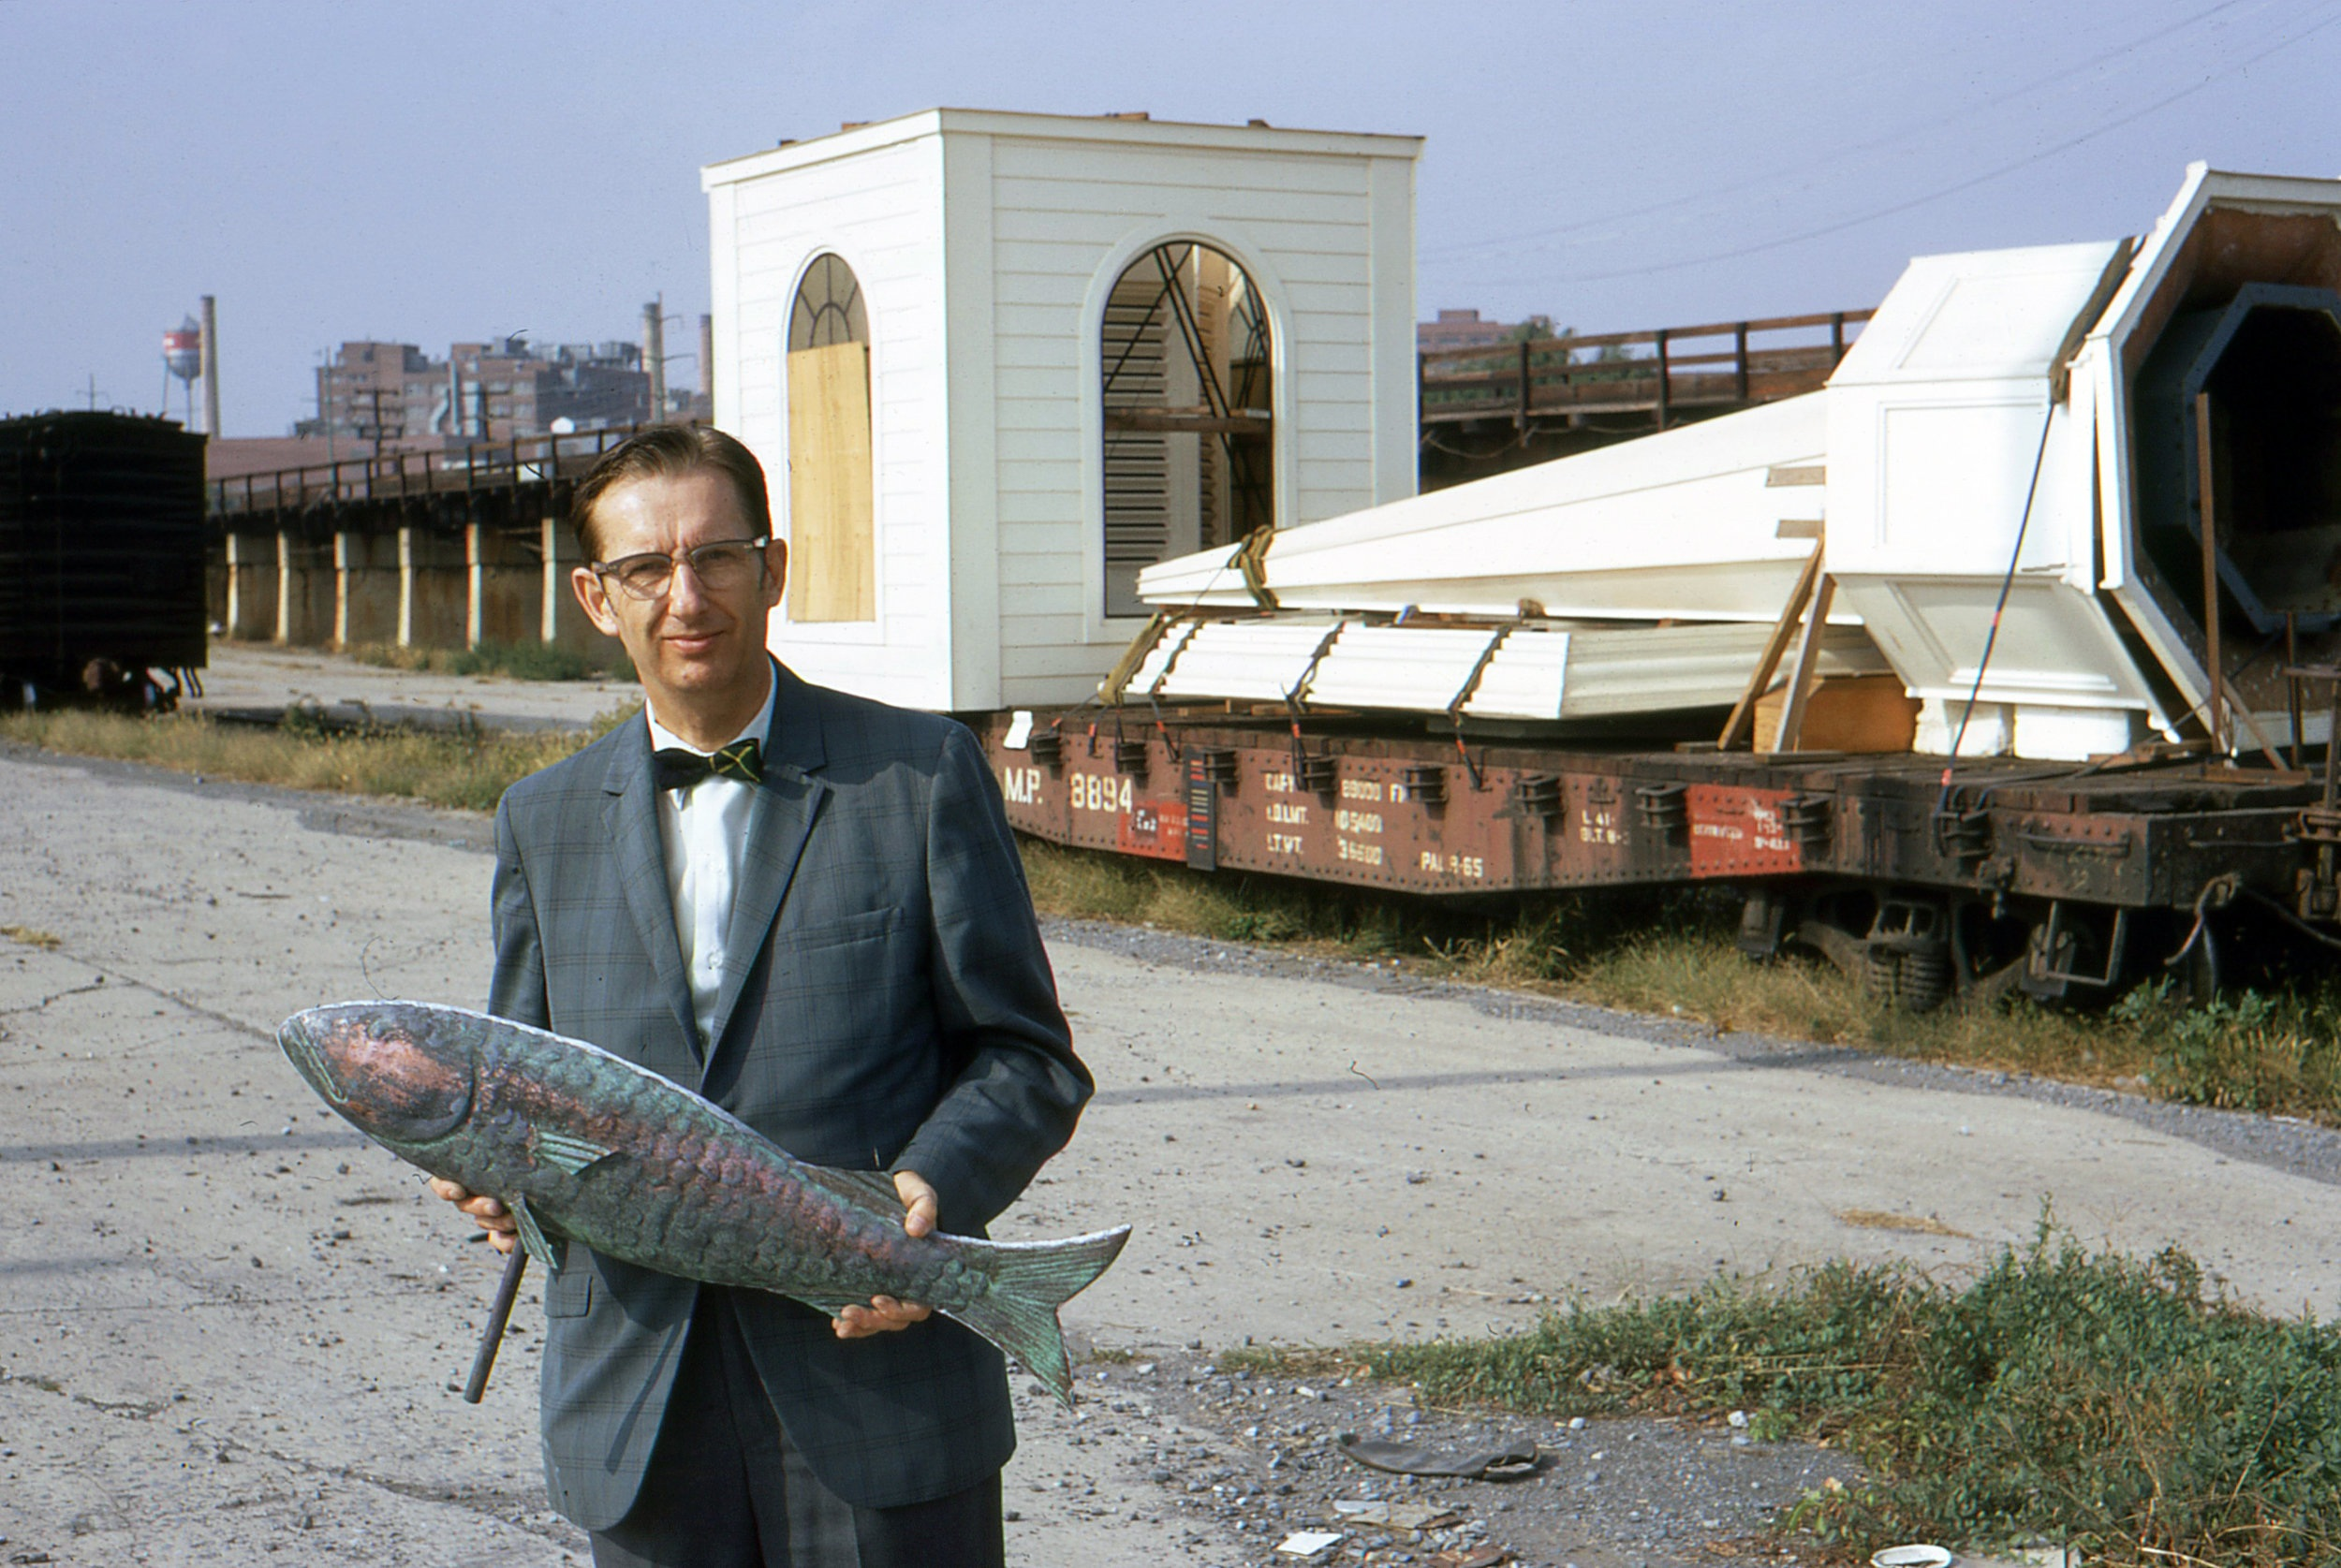 Rev. Siddons at the Railroad Depot with the Steeple on October 20, 1970.